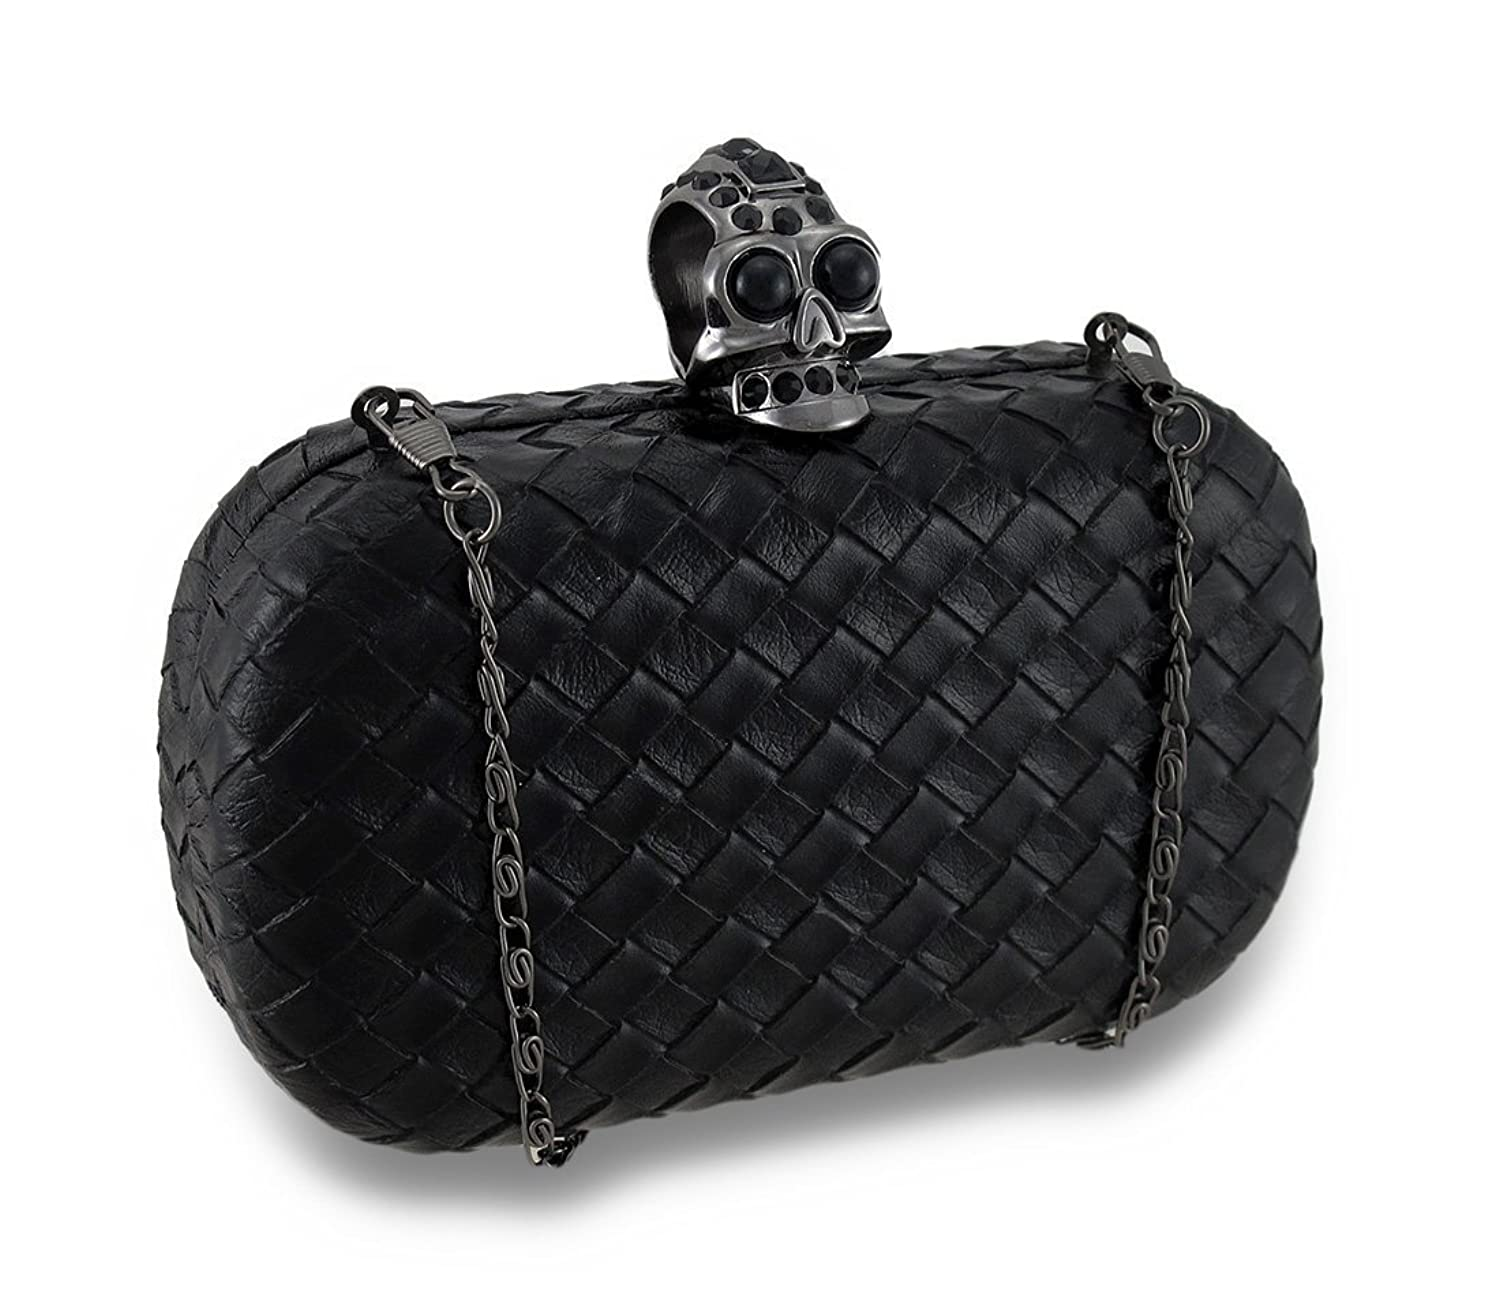 Black Basket Weave Rhinestone Skull Knuckle Ring Clutch Purse w/Detachable Chain